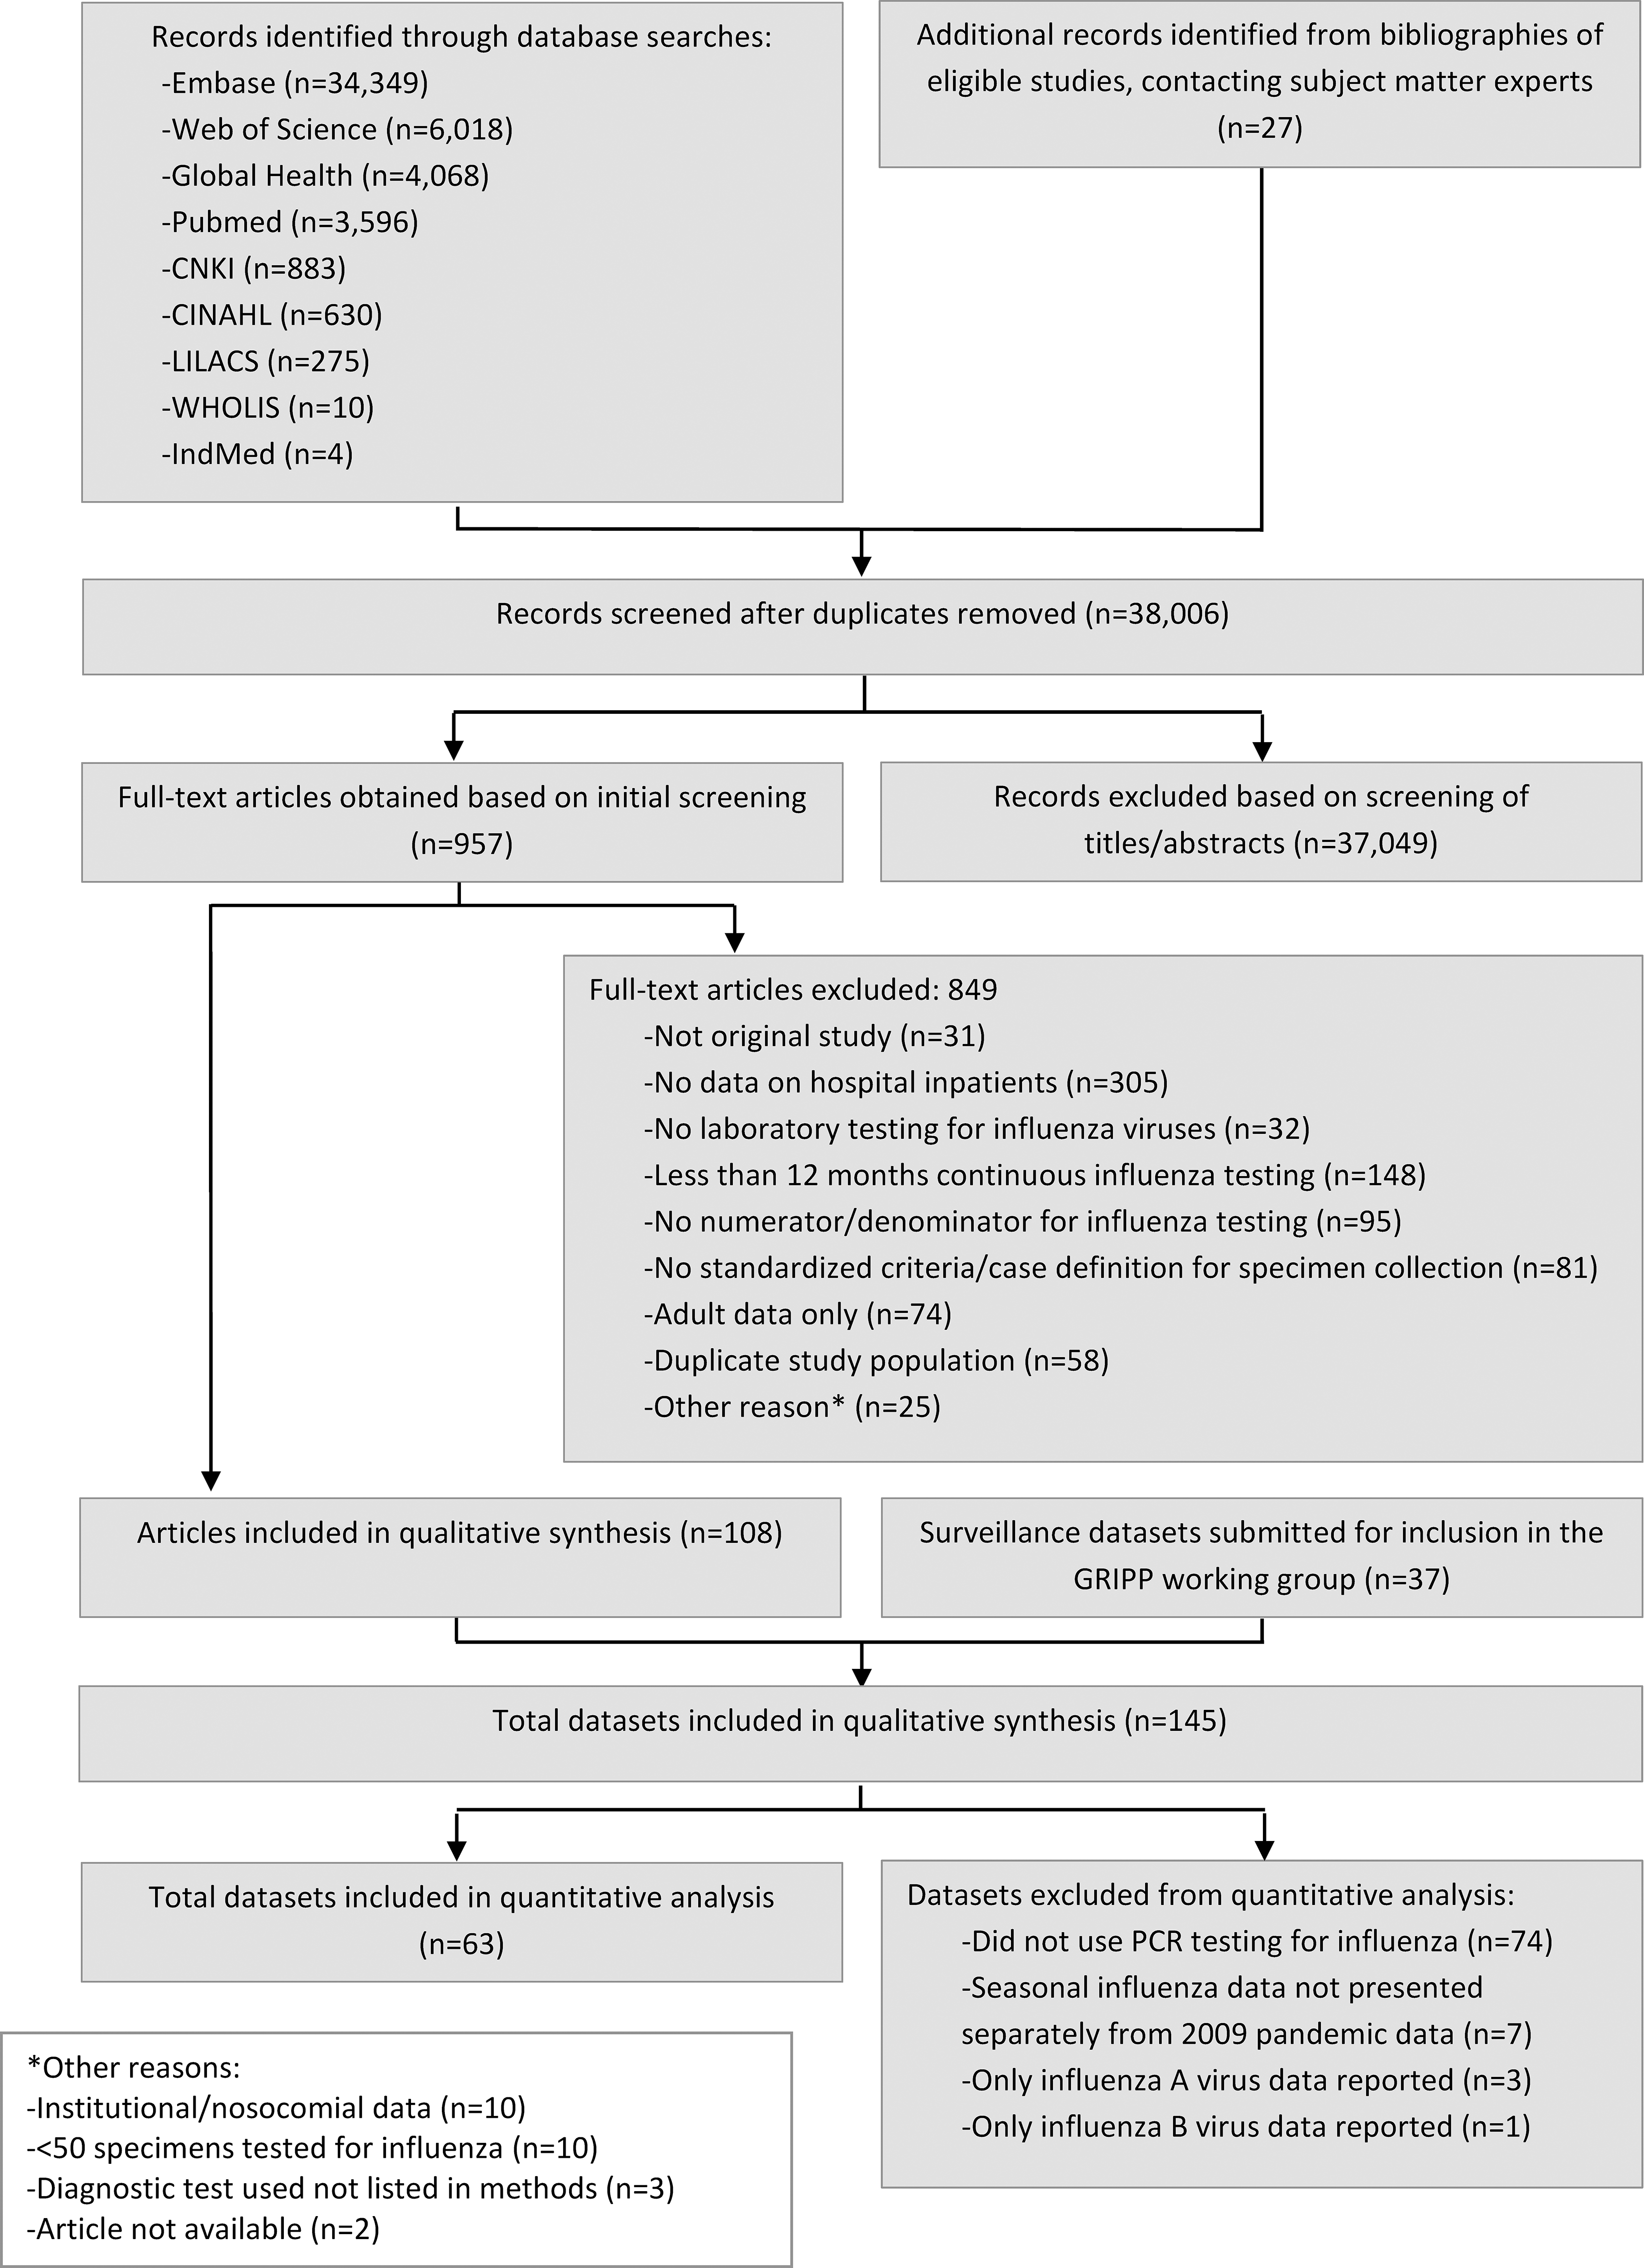 Flow diagram for systematic review process.